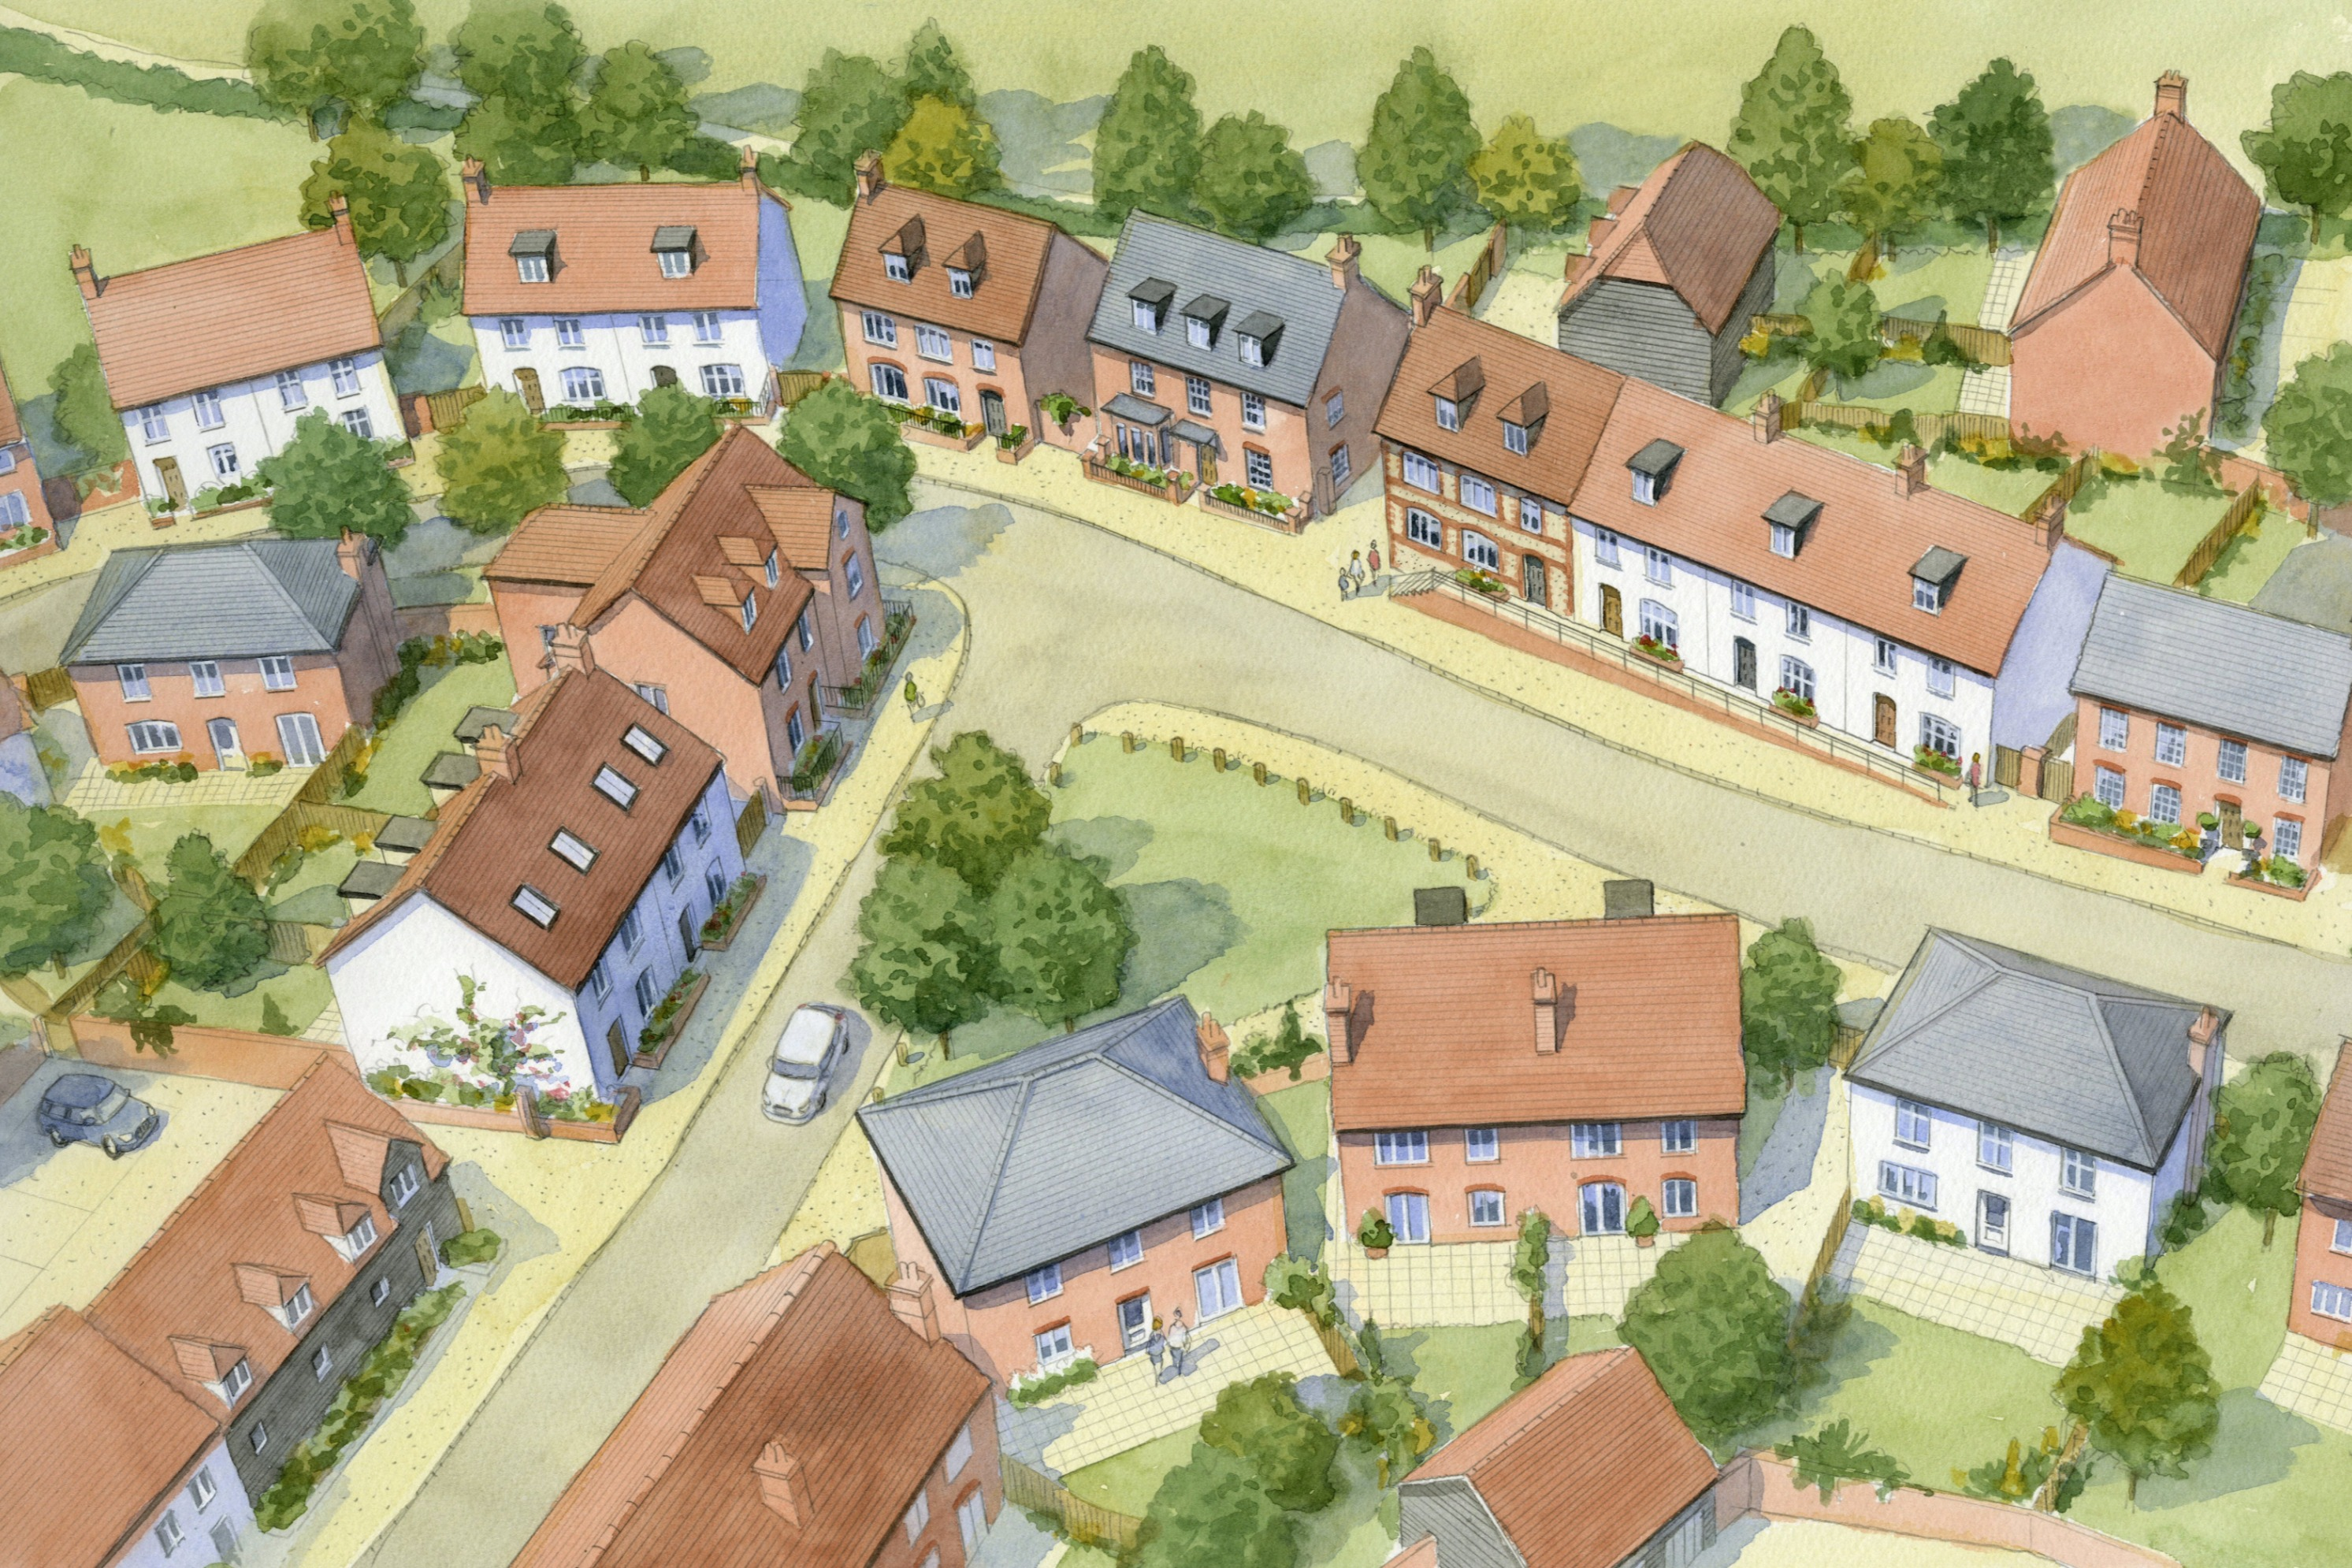 Housing masterplan, Maidenhead, Berkshire - village green surrounded by traditional houses